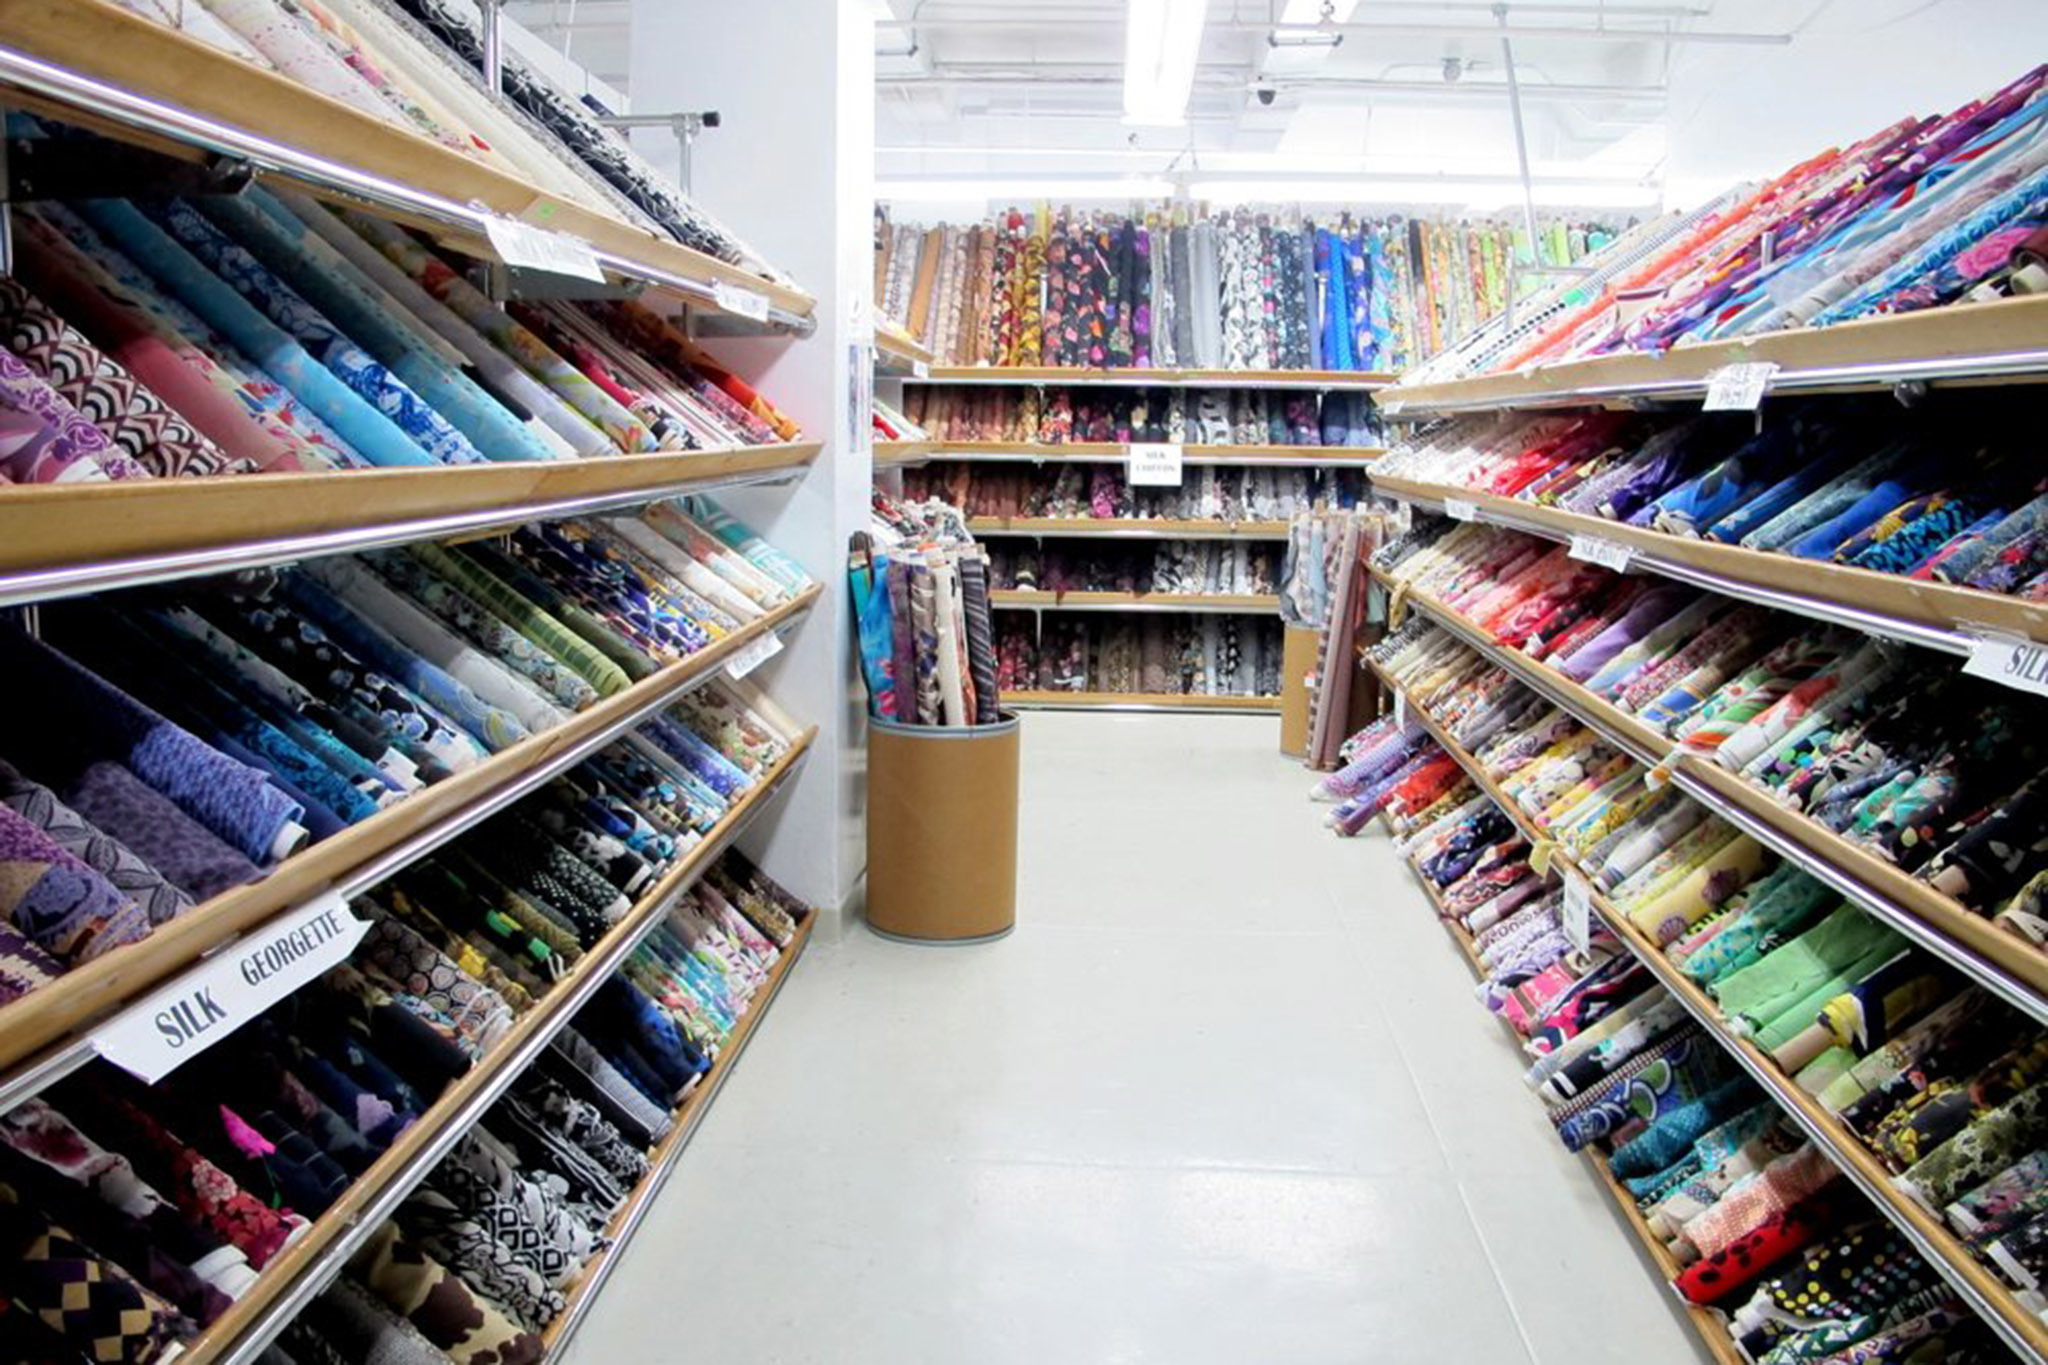 Best fabric stores in NYC for garments and sewing supplies